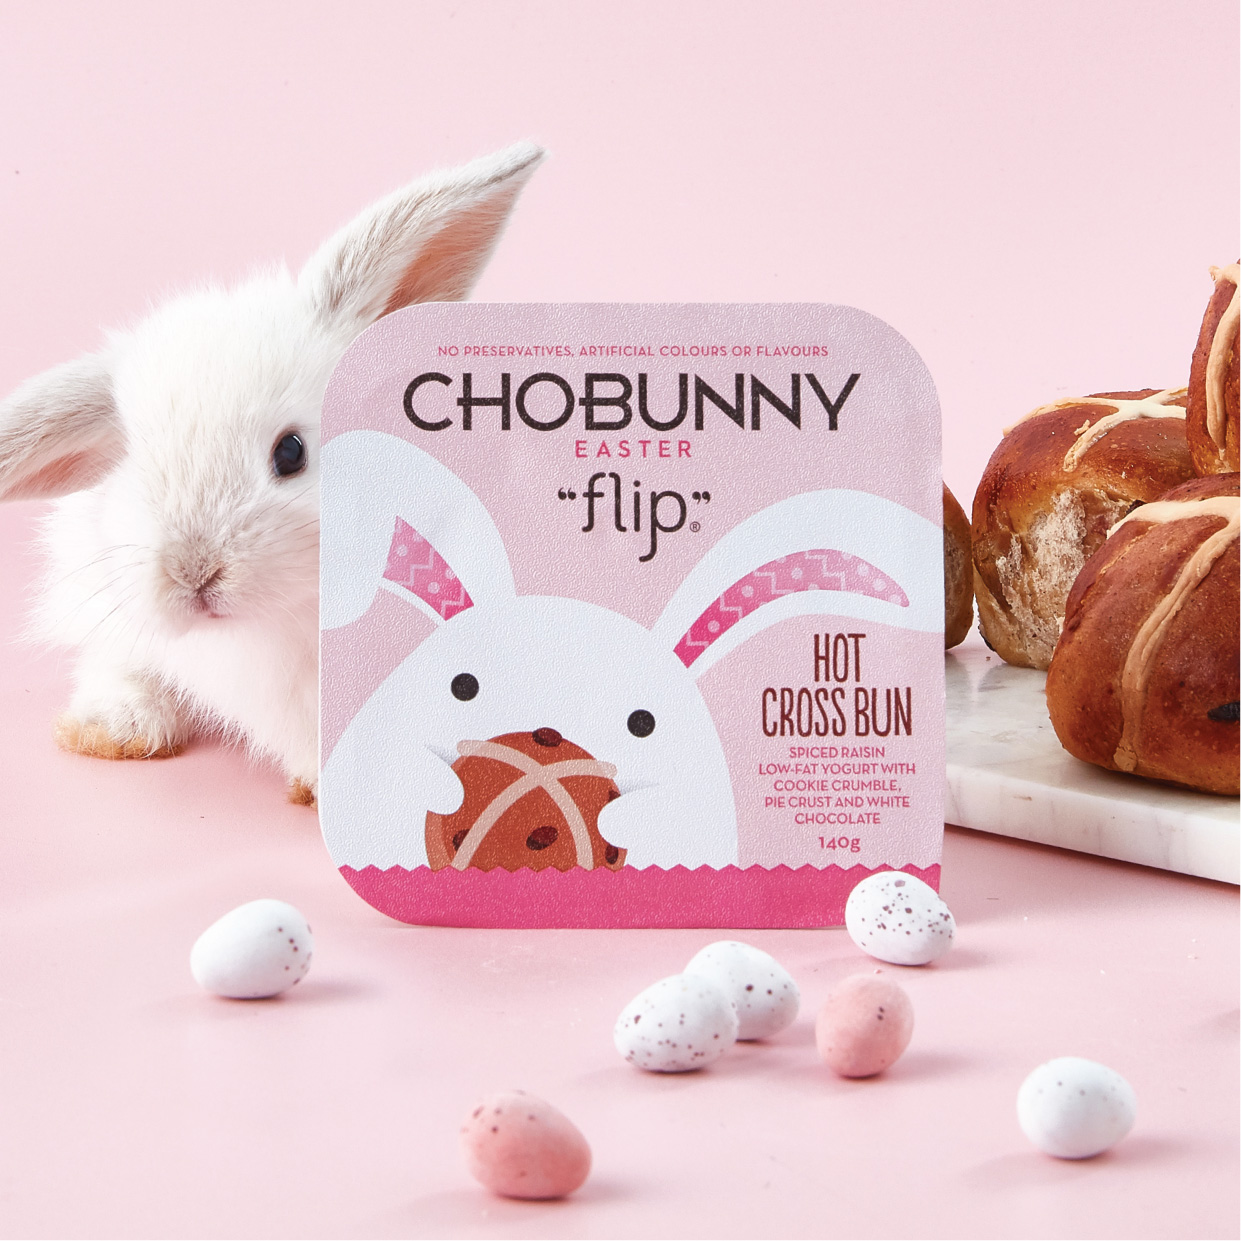 Chobani Chobunny Easter Flip Hot Cross Bun Packaging Design